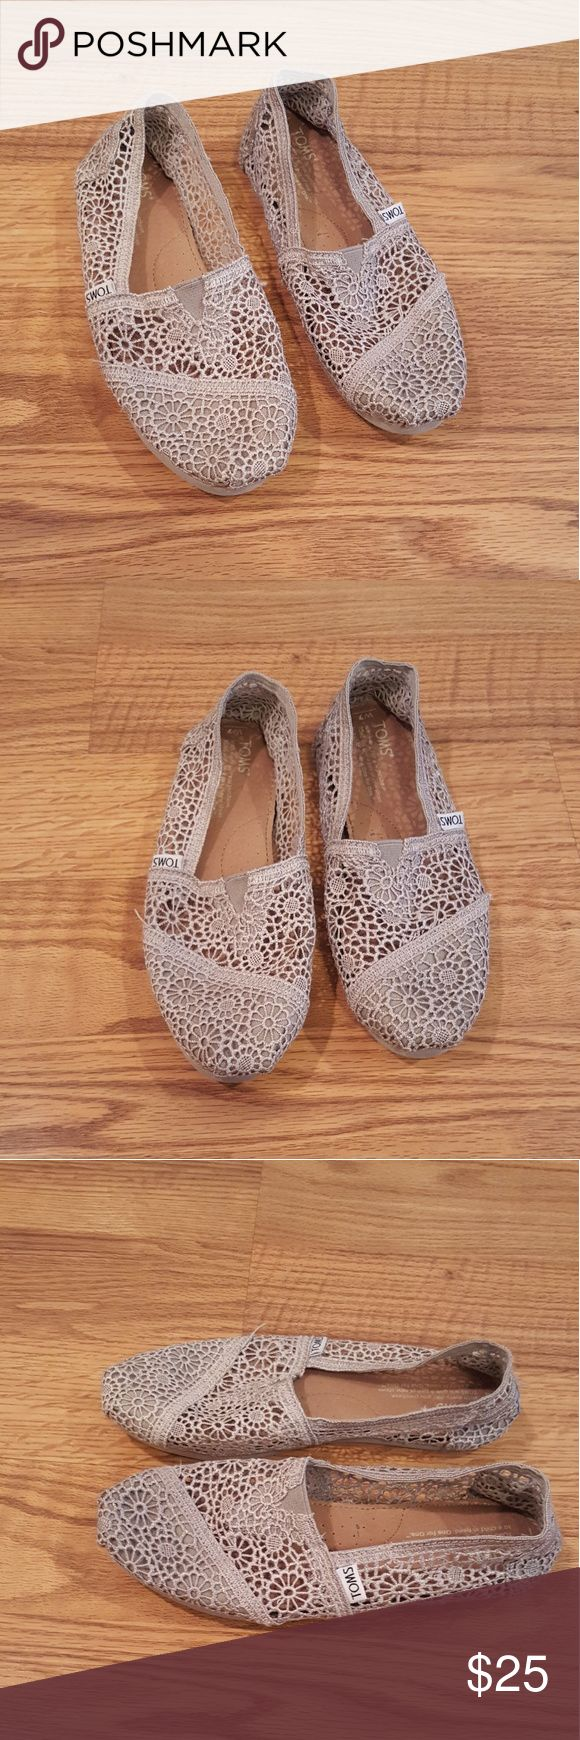 Womens tan lace Toms Womens tan lace Toms size 7.  Barely worn just been sitting in my closet.  Pet and smoke free home, pre-owned. Toms Shoes Flats & Loafers